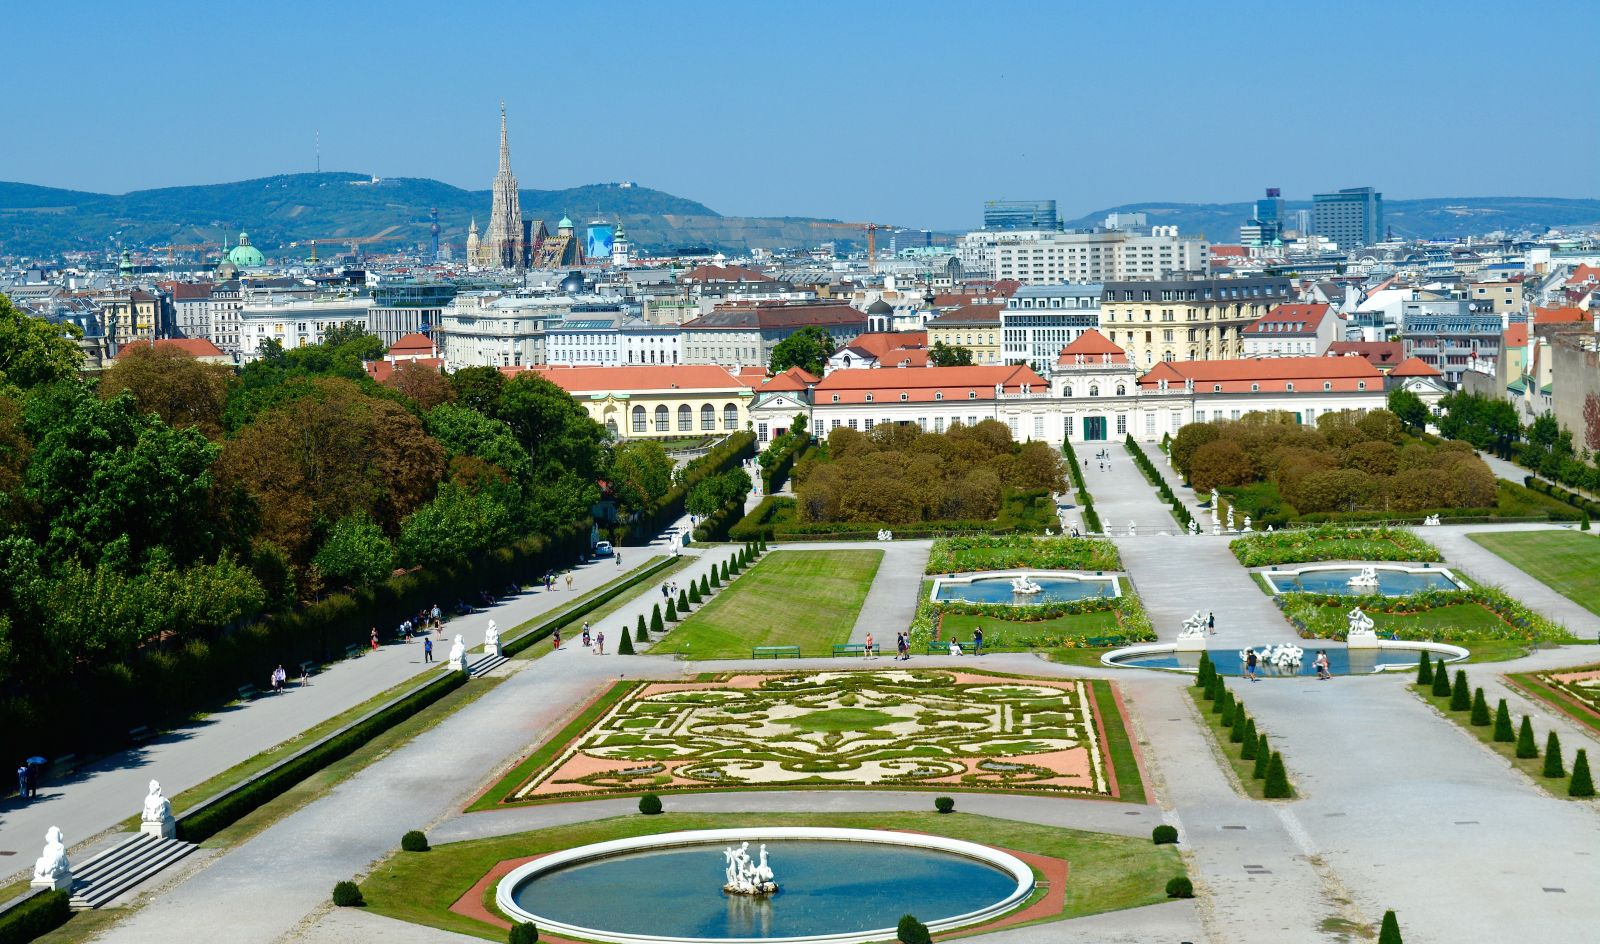 city-view-belvedere-palace-museum-vienna